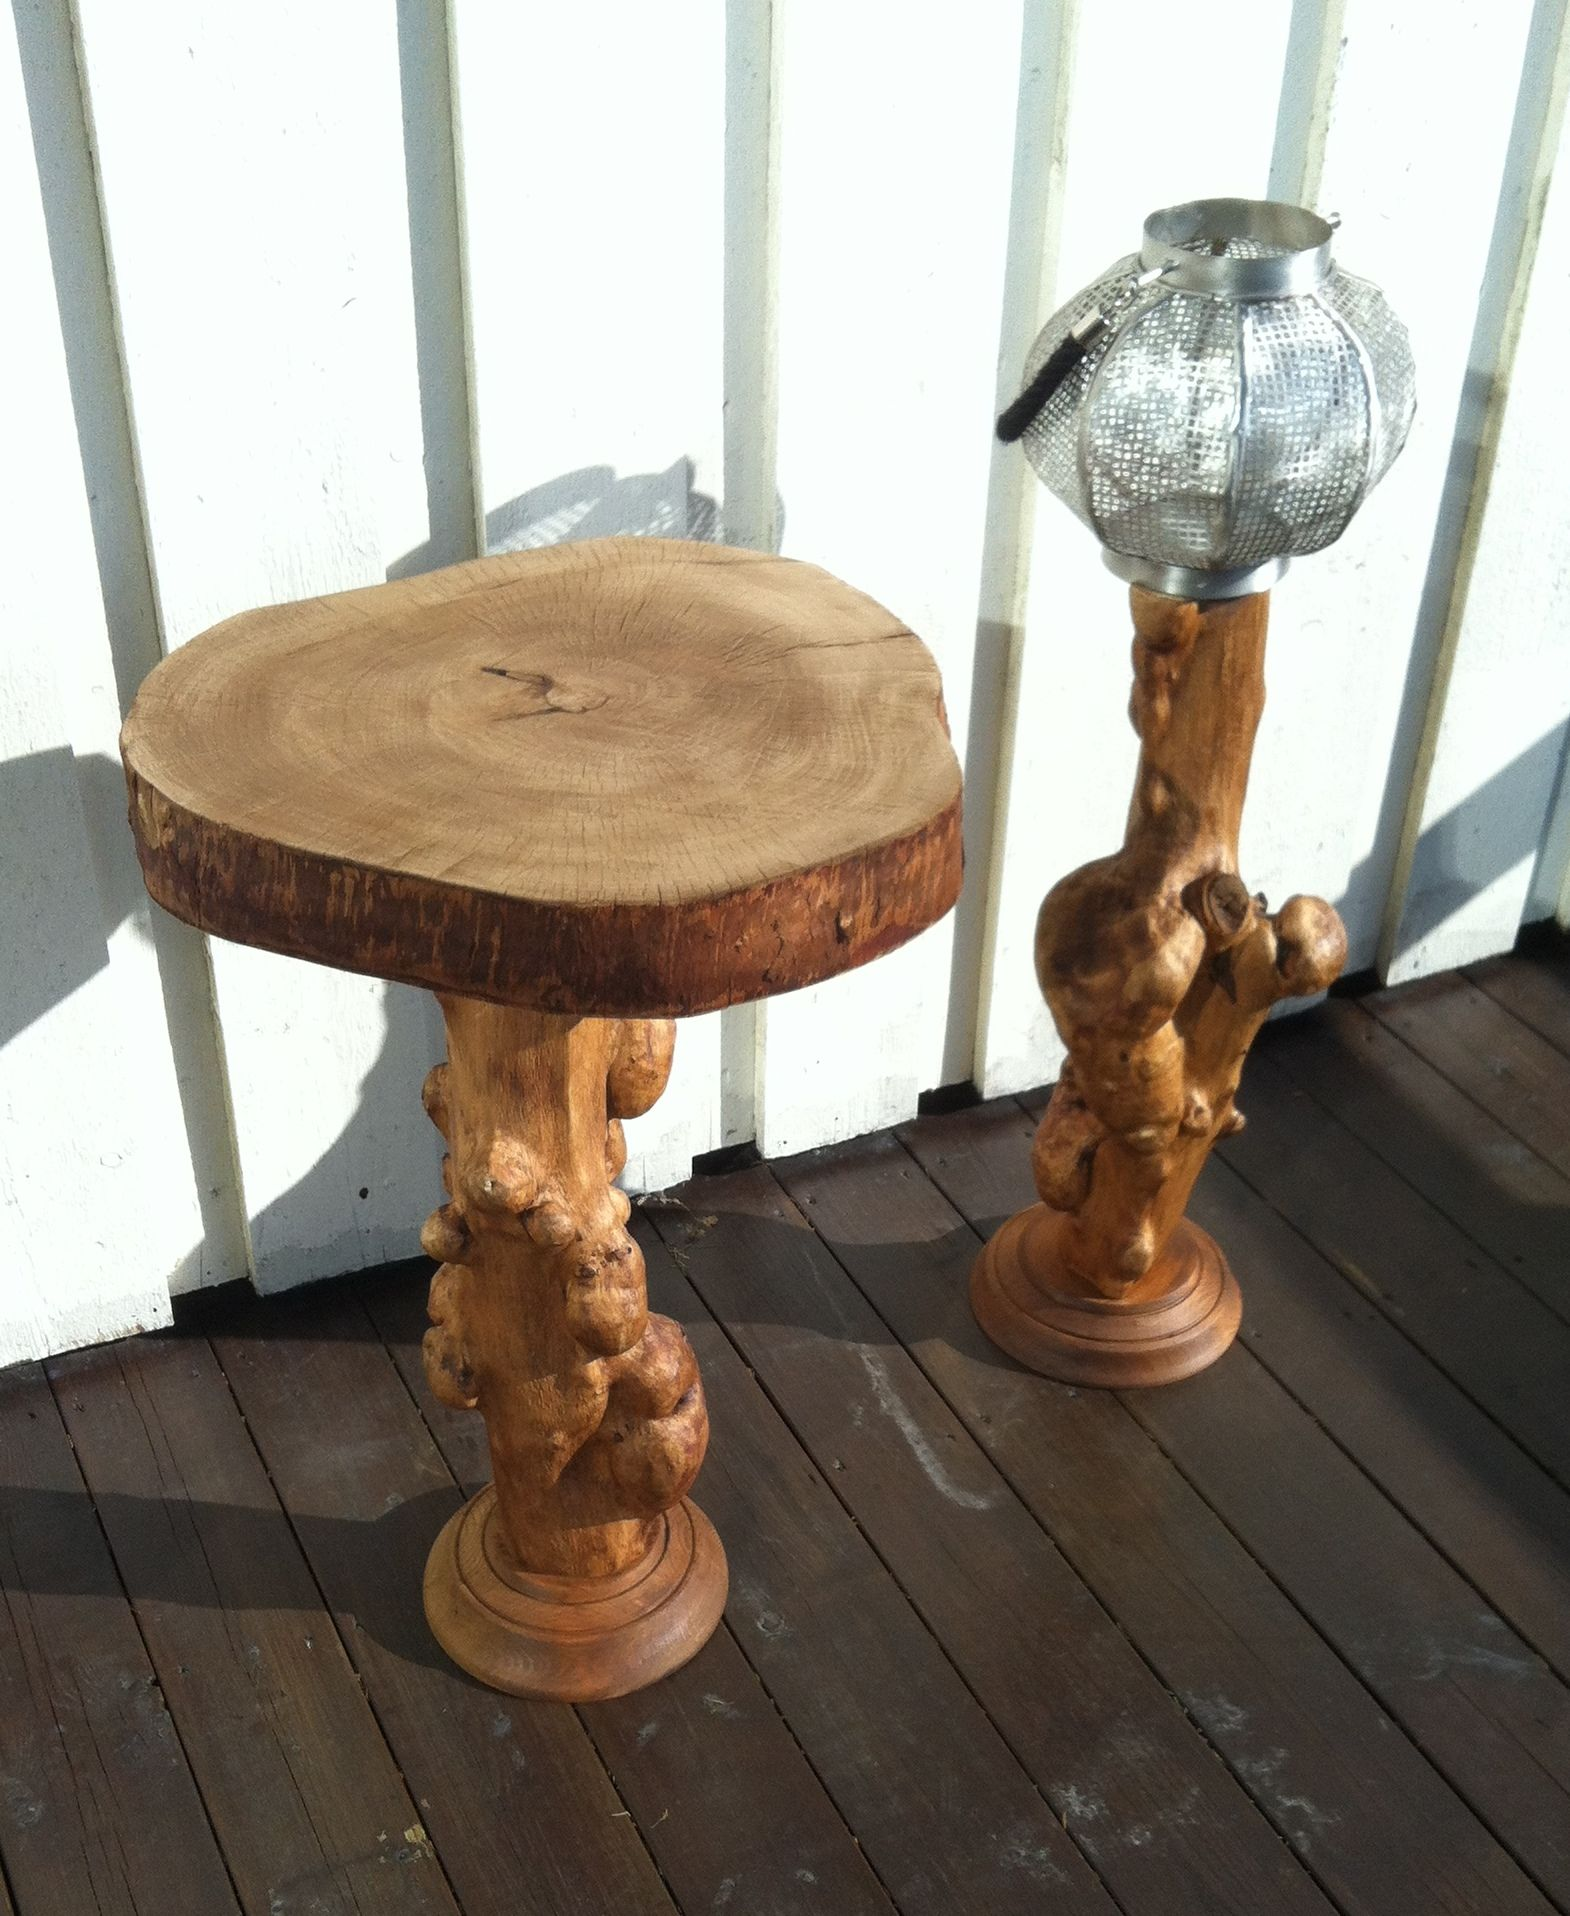 Table and lantern